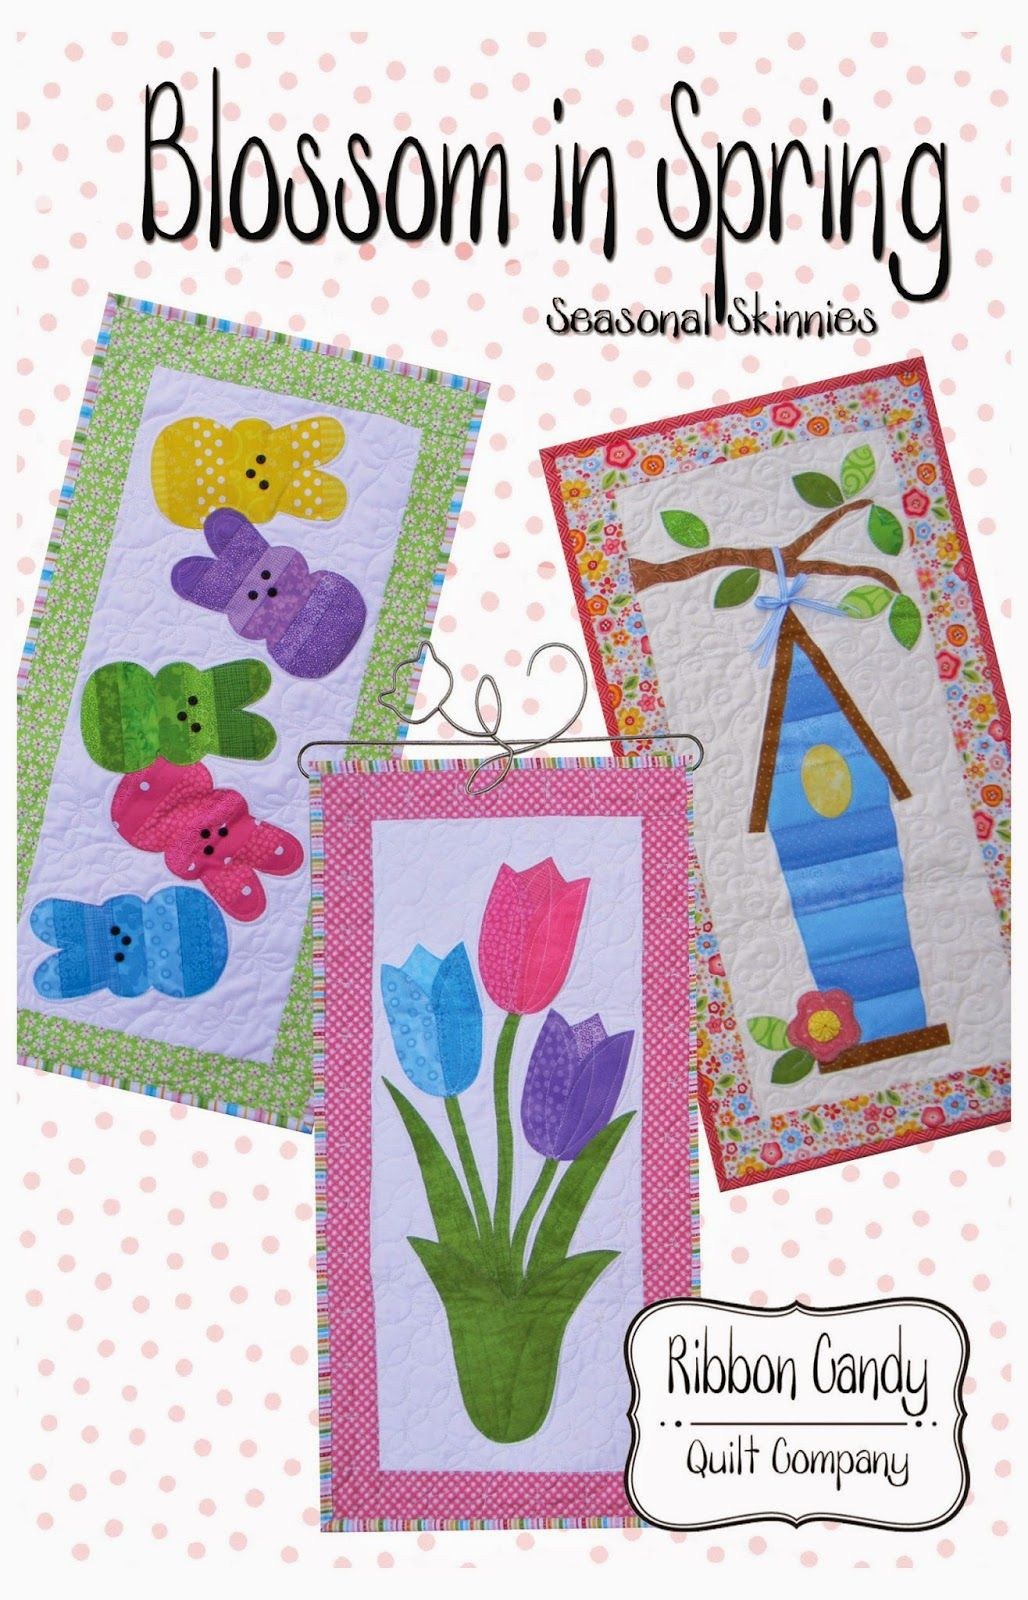 Ribbon Candy Quilt Company | SEWING | Pinterest | Ribbon candy ... : ribbon candy quilt - Adamdwight.com